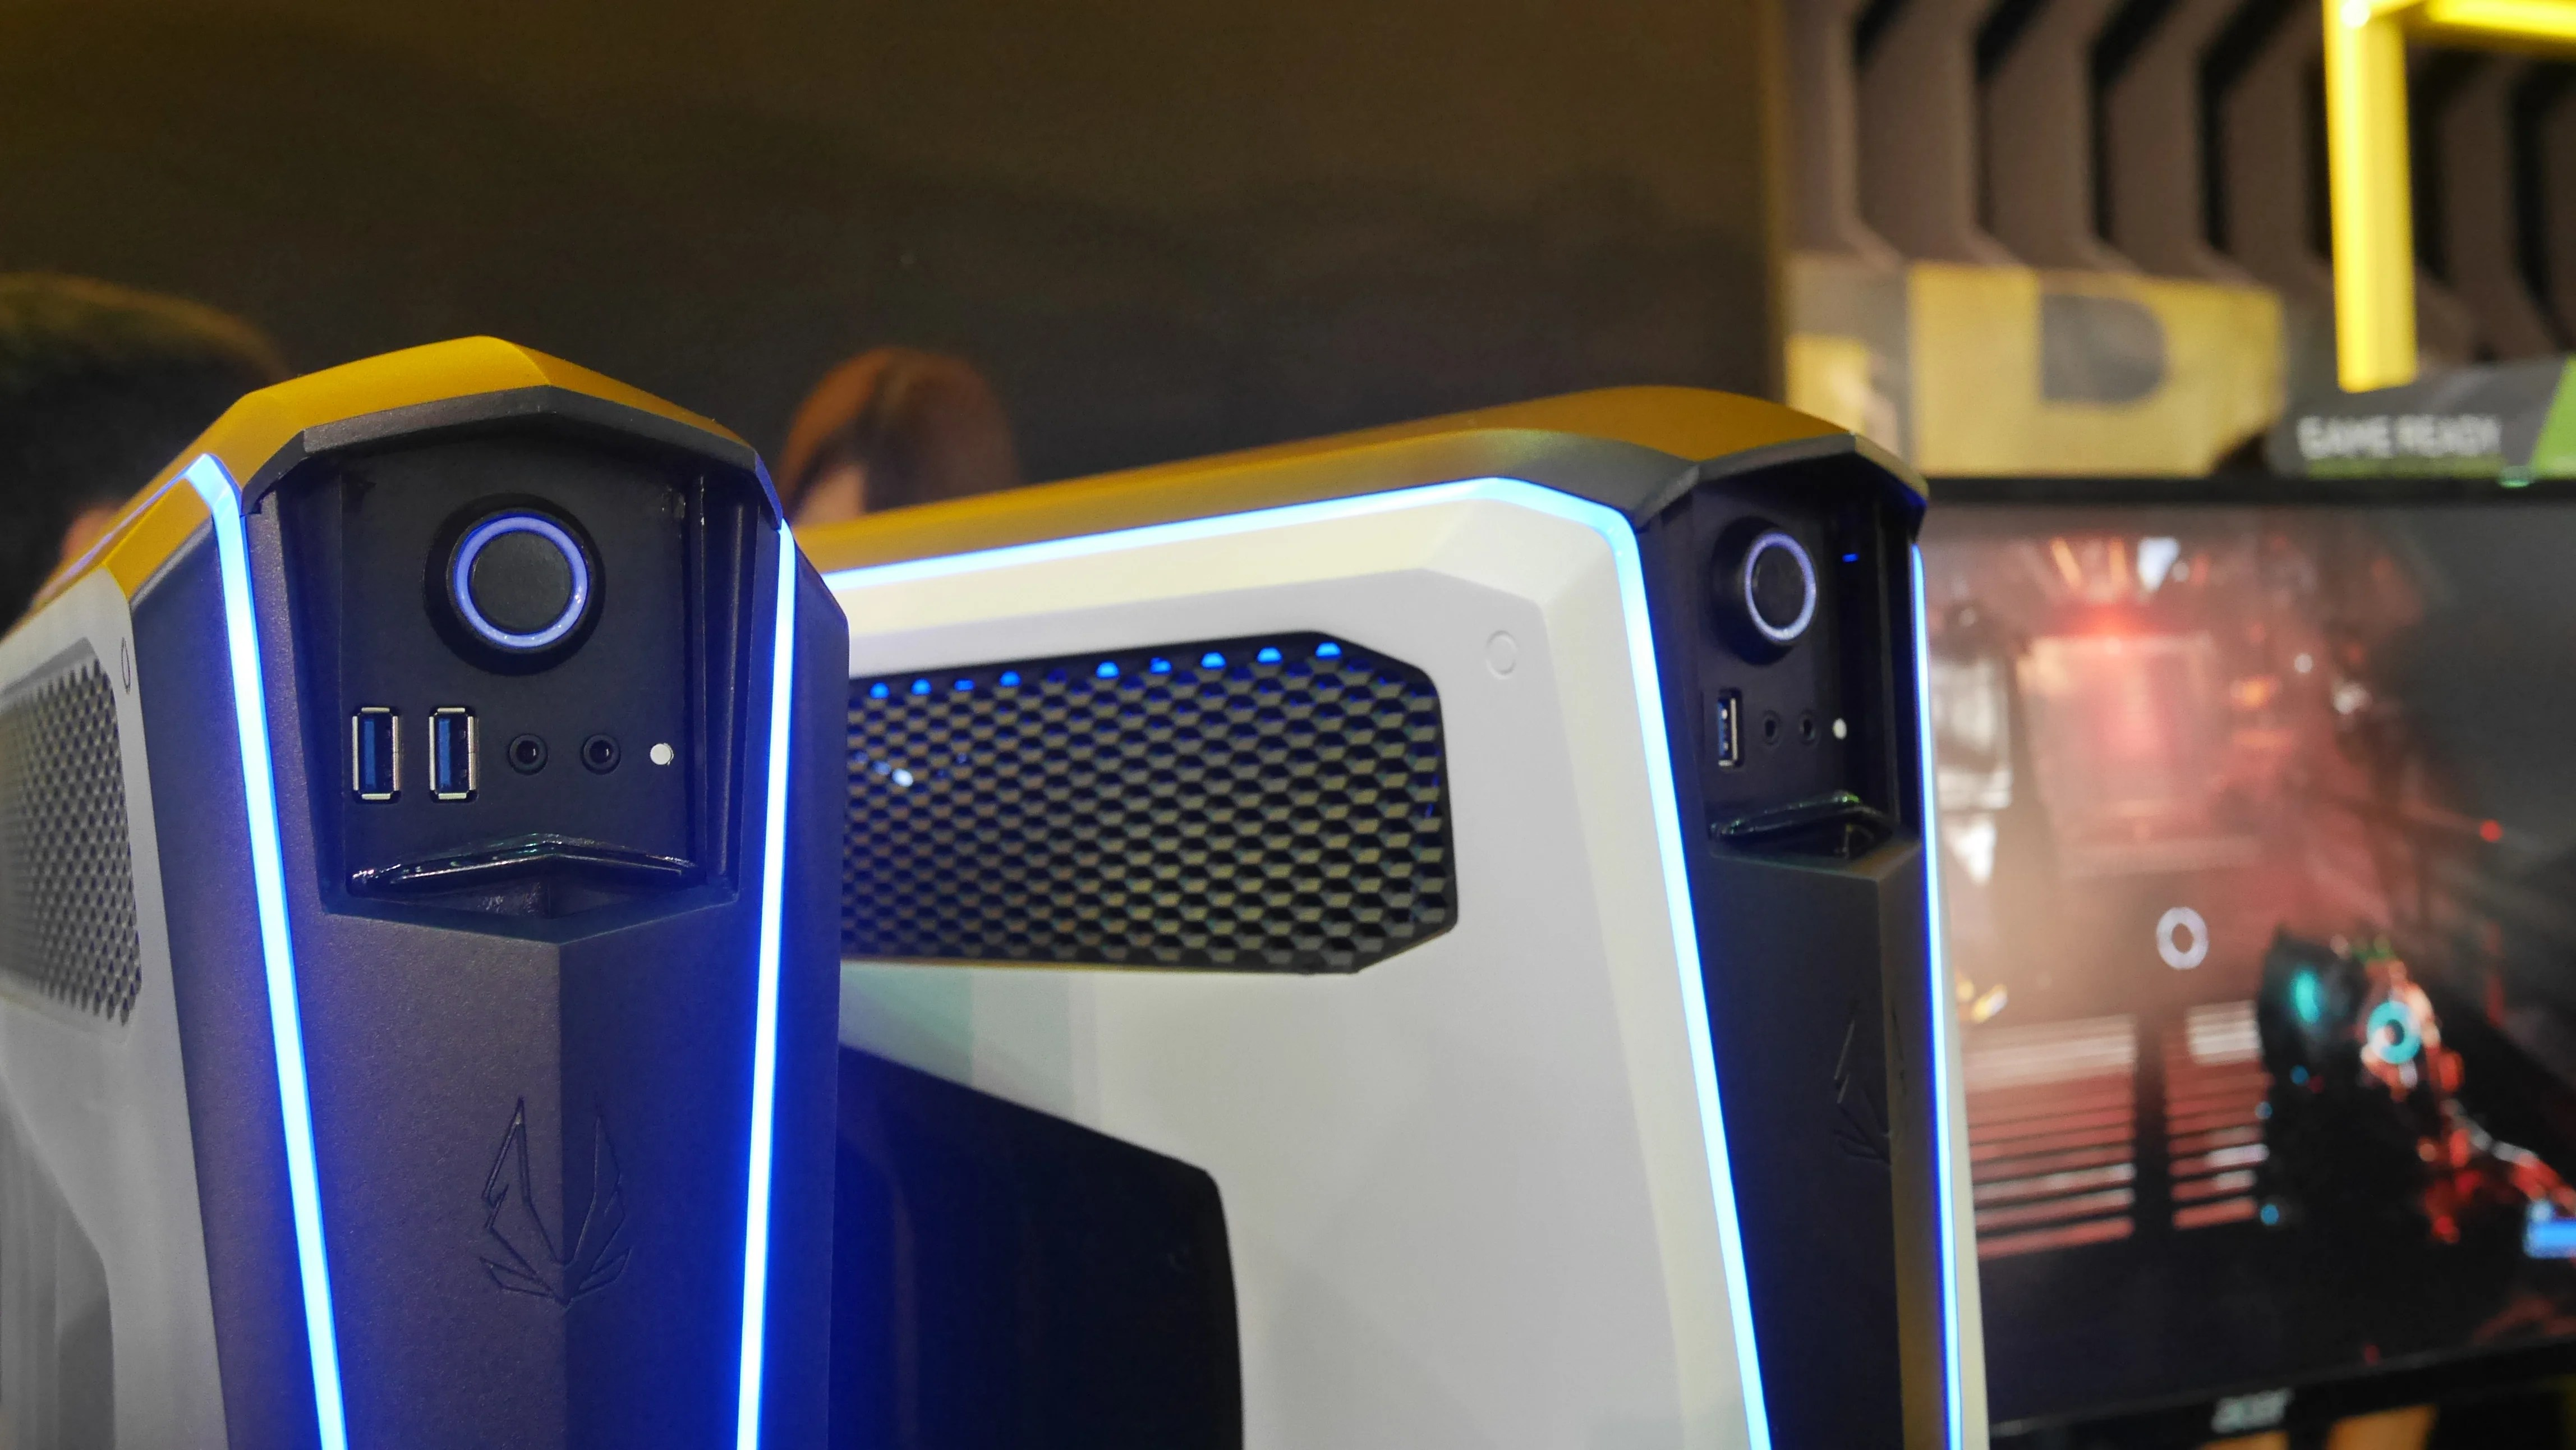 Zotac Goes Big With New GTX 1080 Mini PCs Trusted Reviews